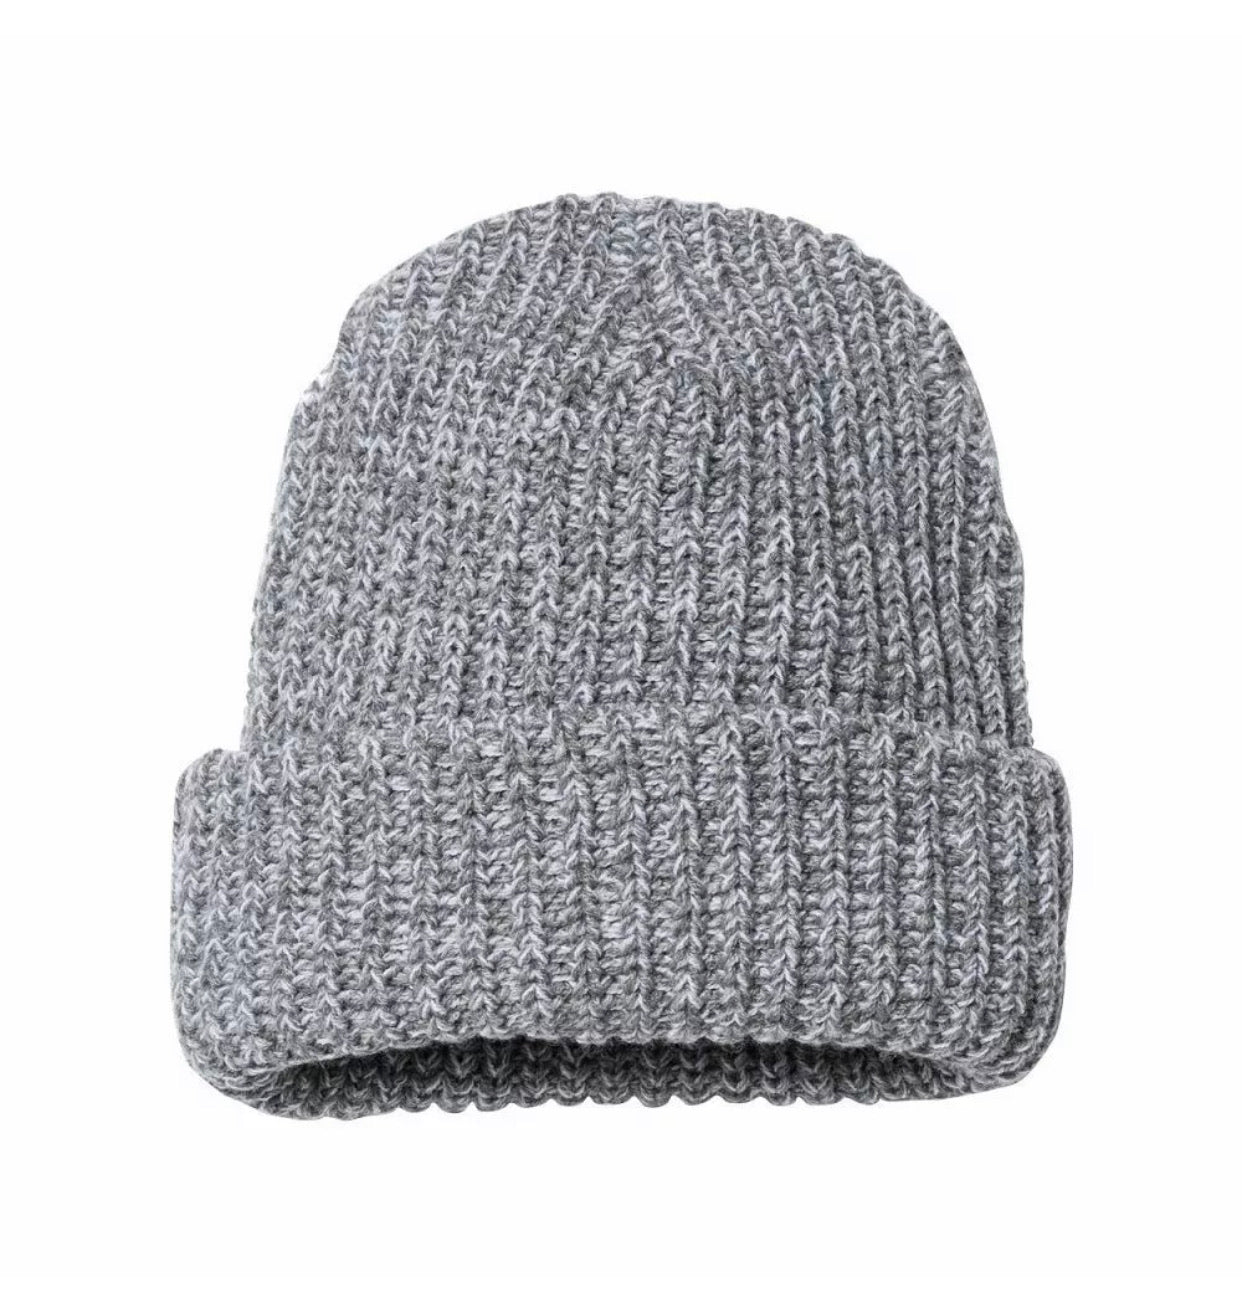 The Heather Grey Chunky Beanie - Extra Thick!